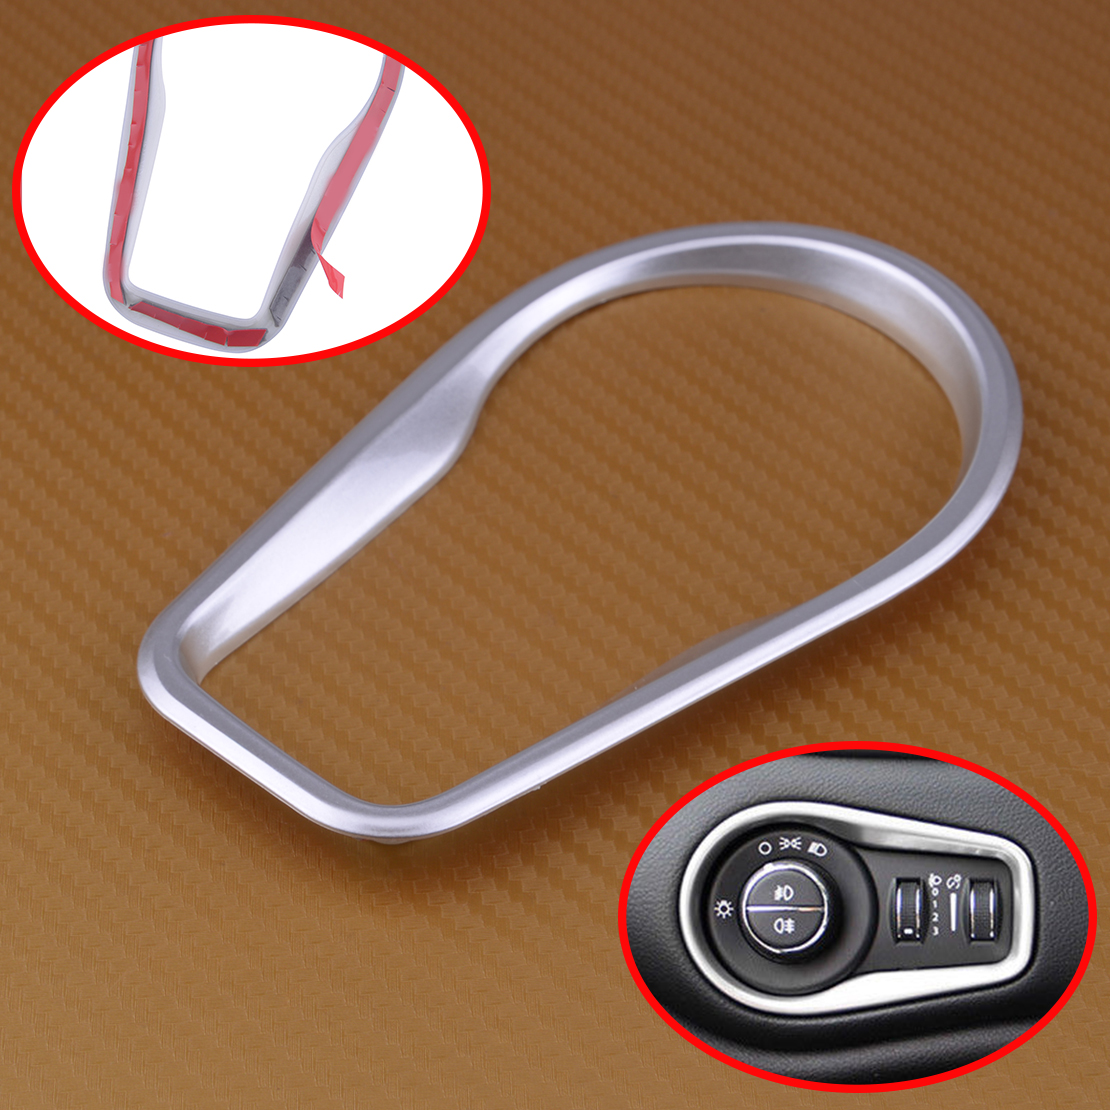 Emblem Molding Backing Plate Kit Bezel Dash Grab Bar Handle